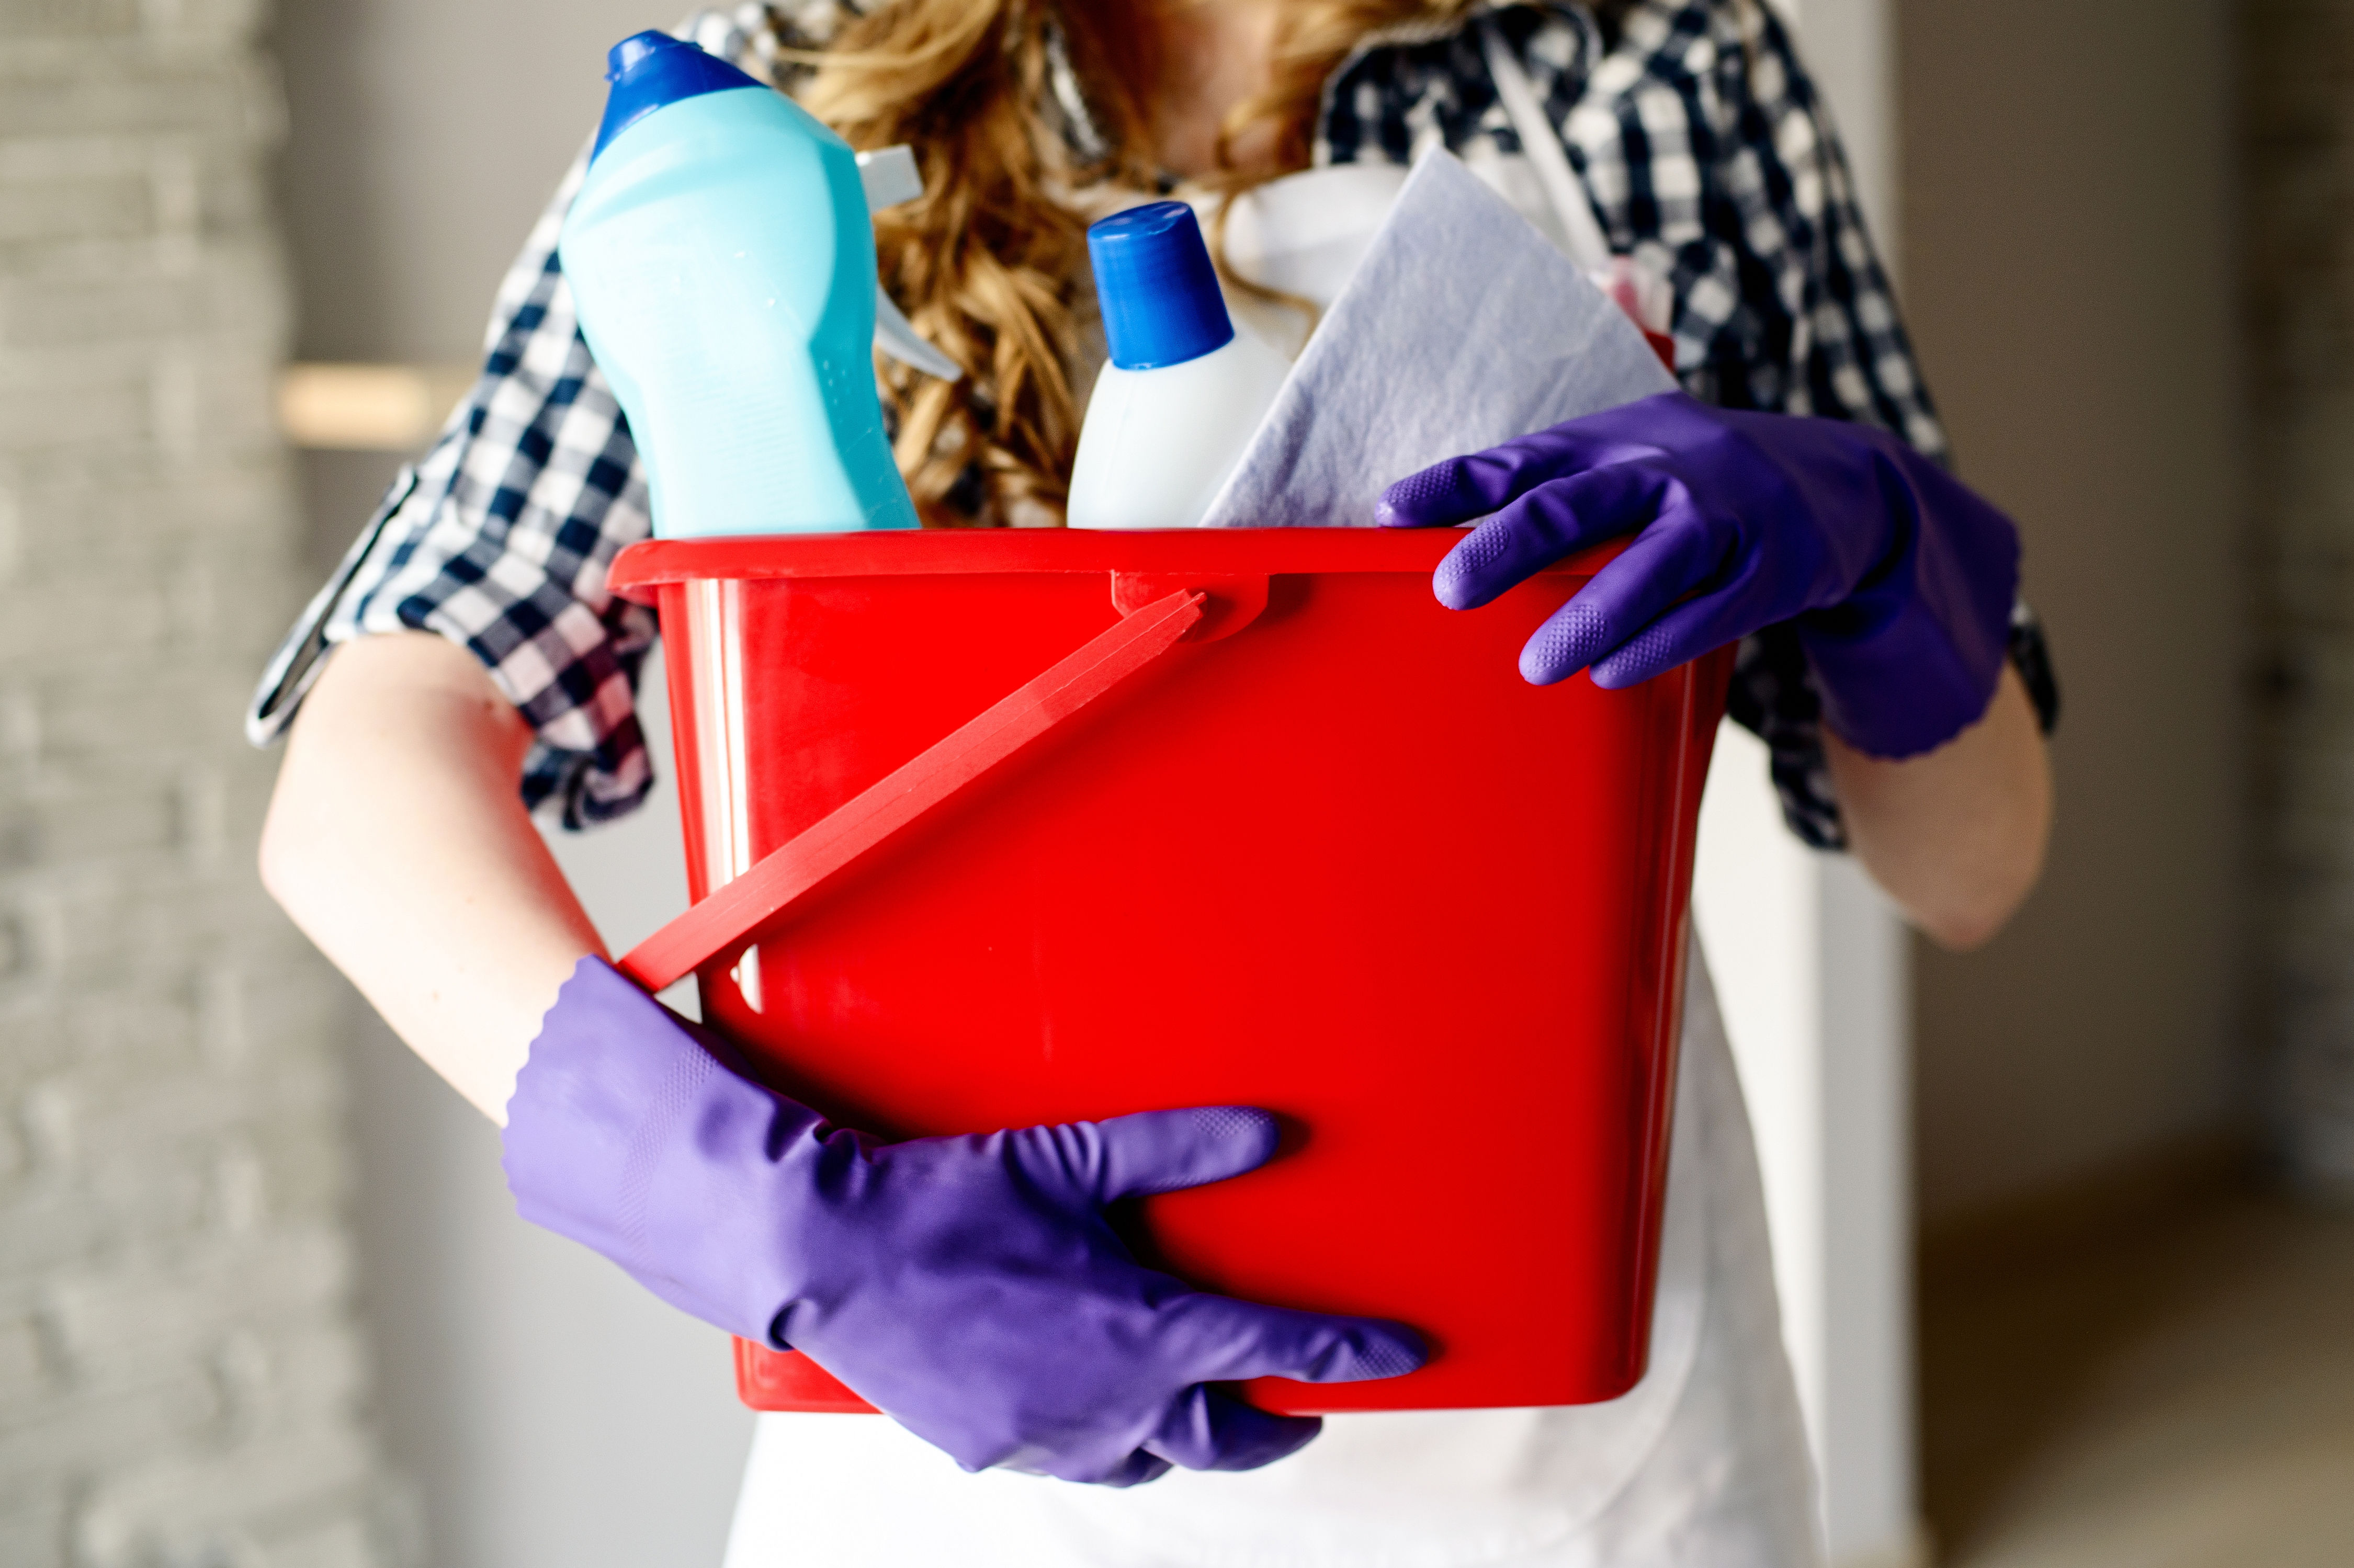 7 Things Professional Cleaners Do In Their Own Homes